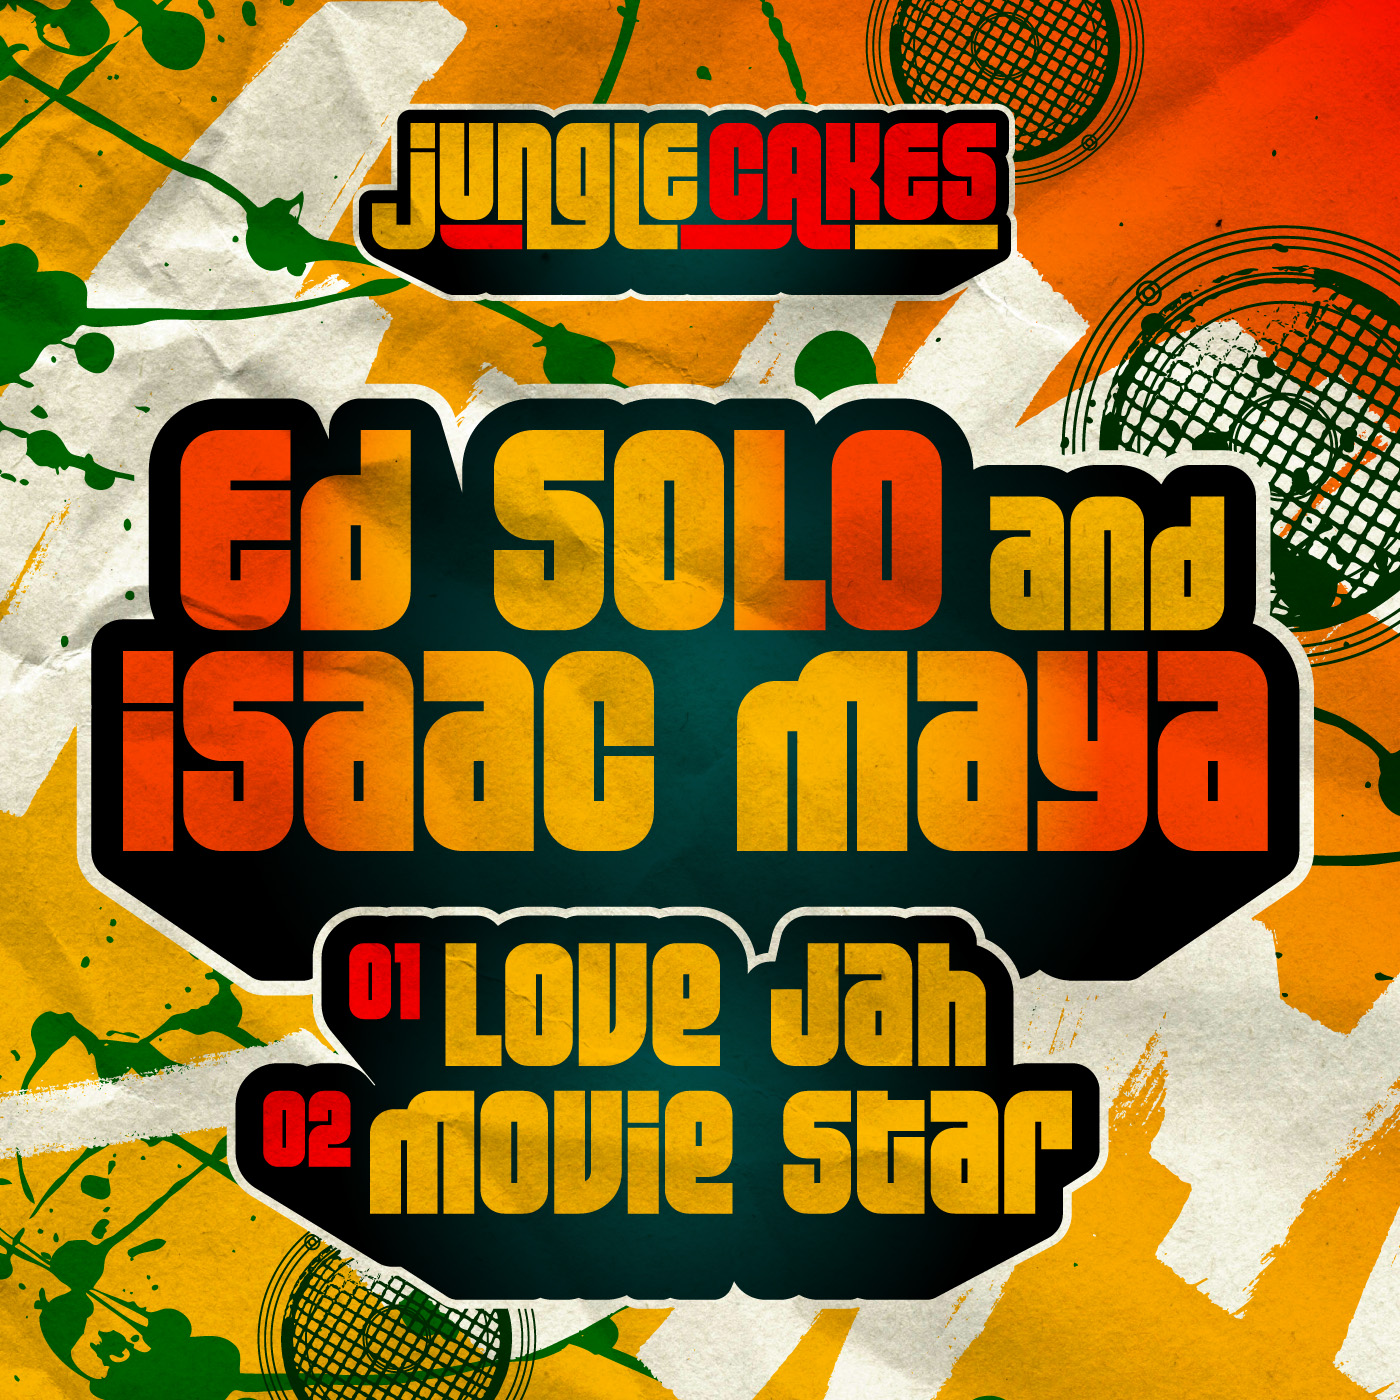 'Love Jah' & 'Movie Star' Ed Solo And Isaac Maya - Jungle Cakes Vol 26